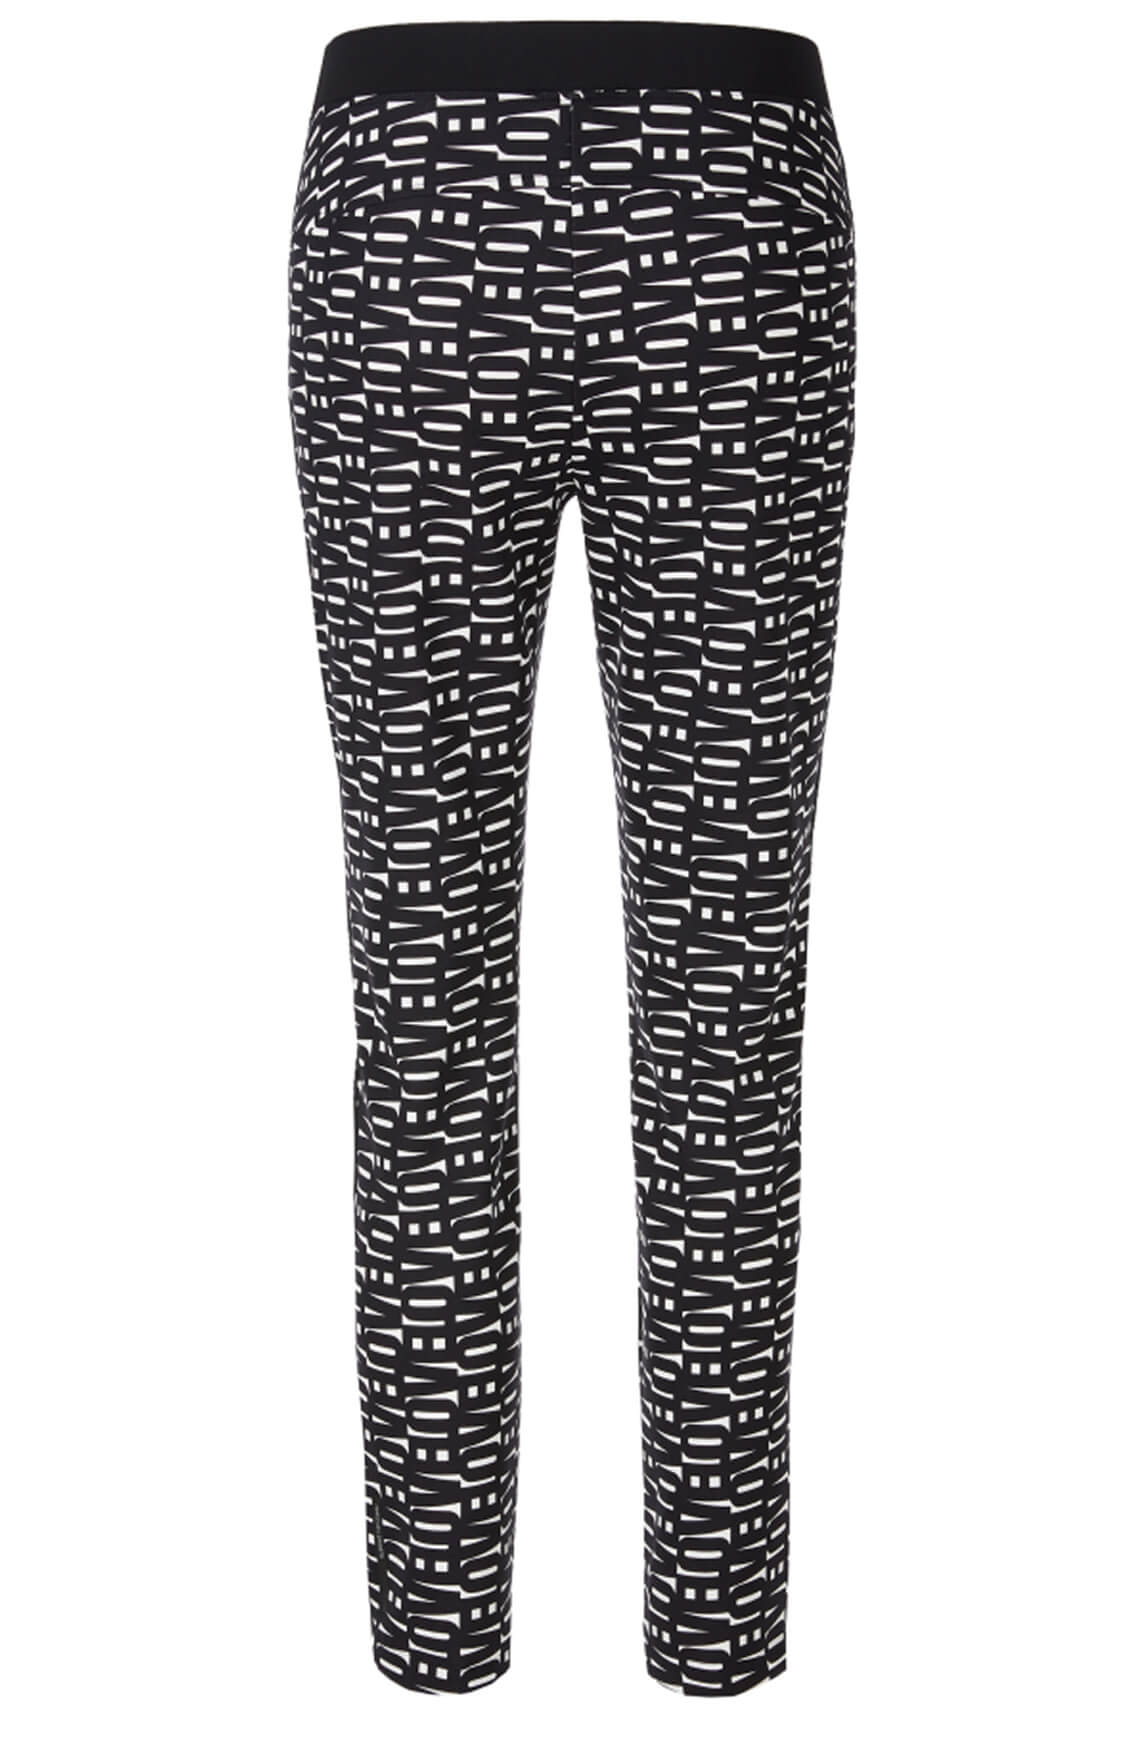 Marccain Sports Dames Love Letter pantalon zwart